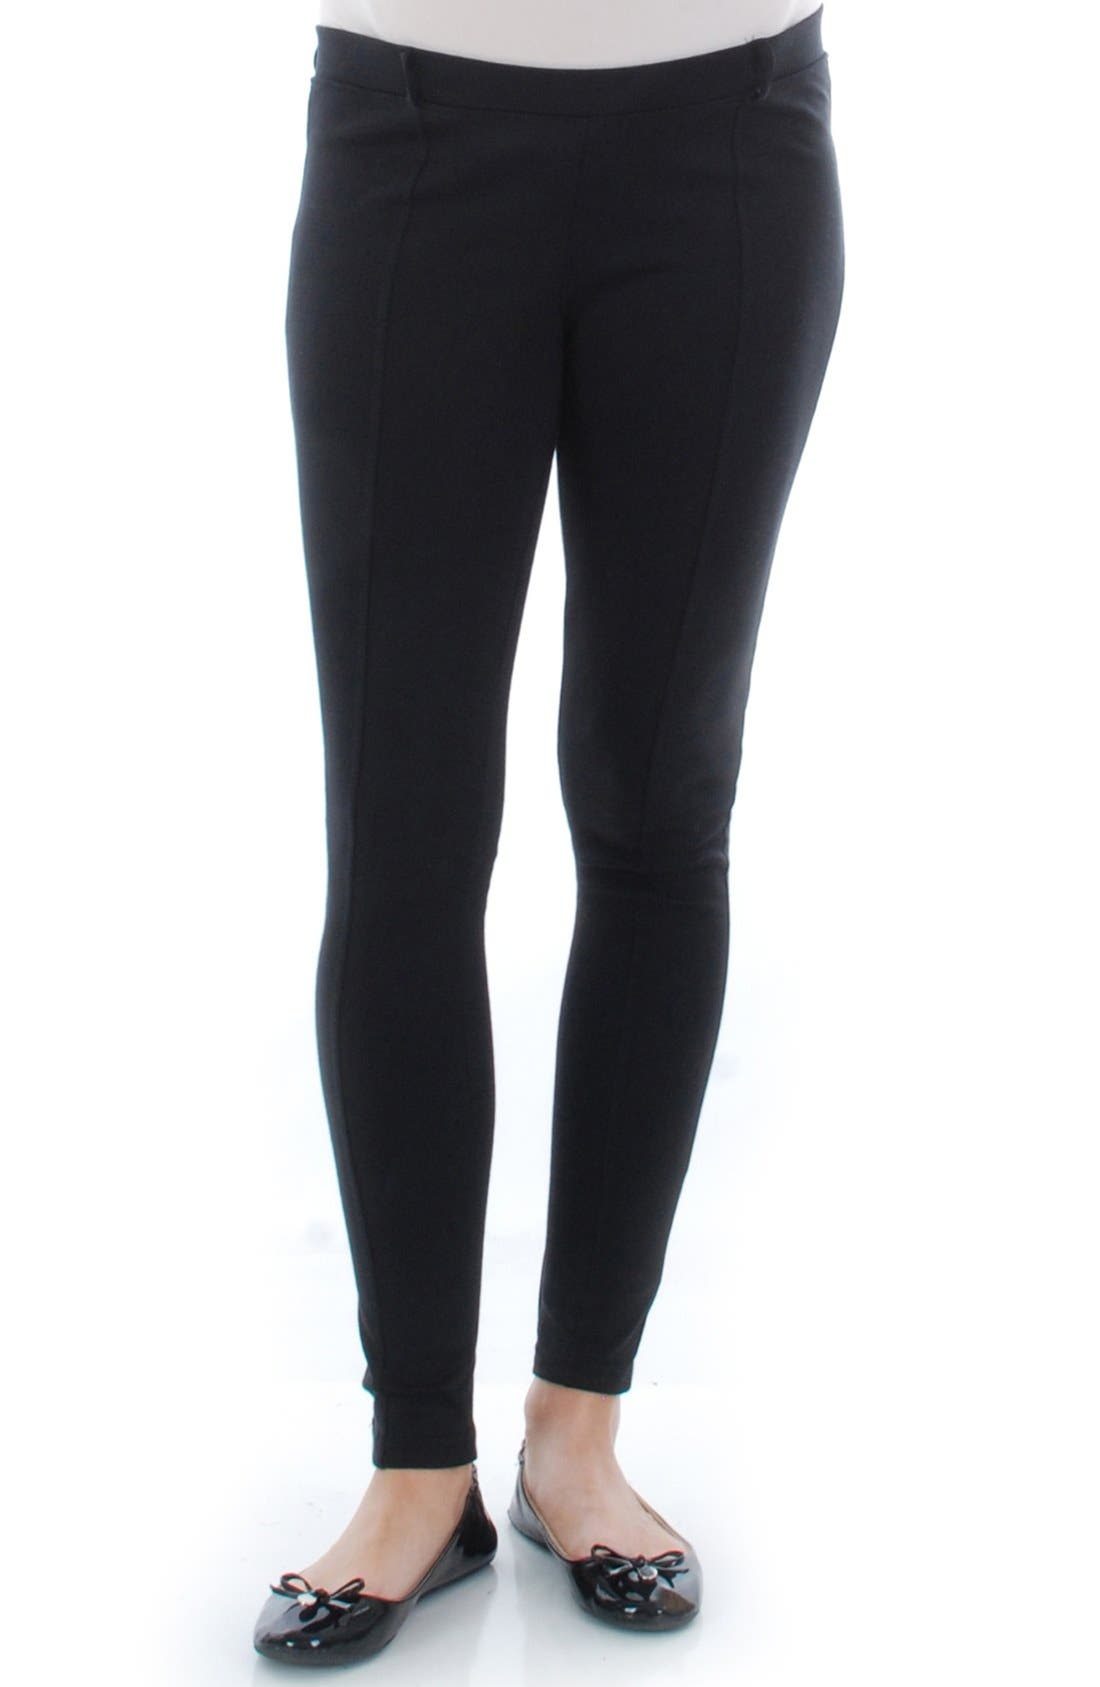 Main Image - Everly Grey 'Bingley' Maternity Leggings